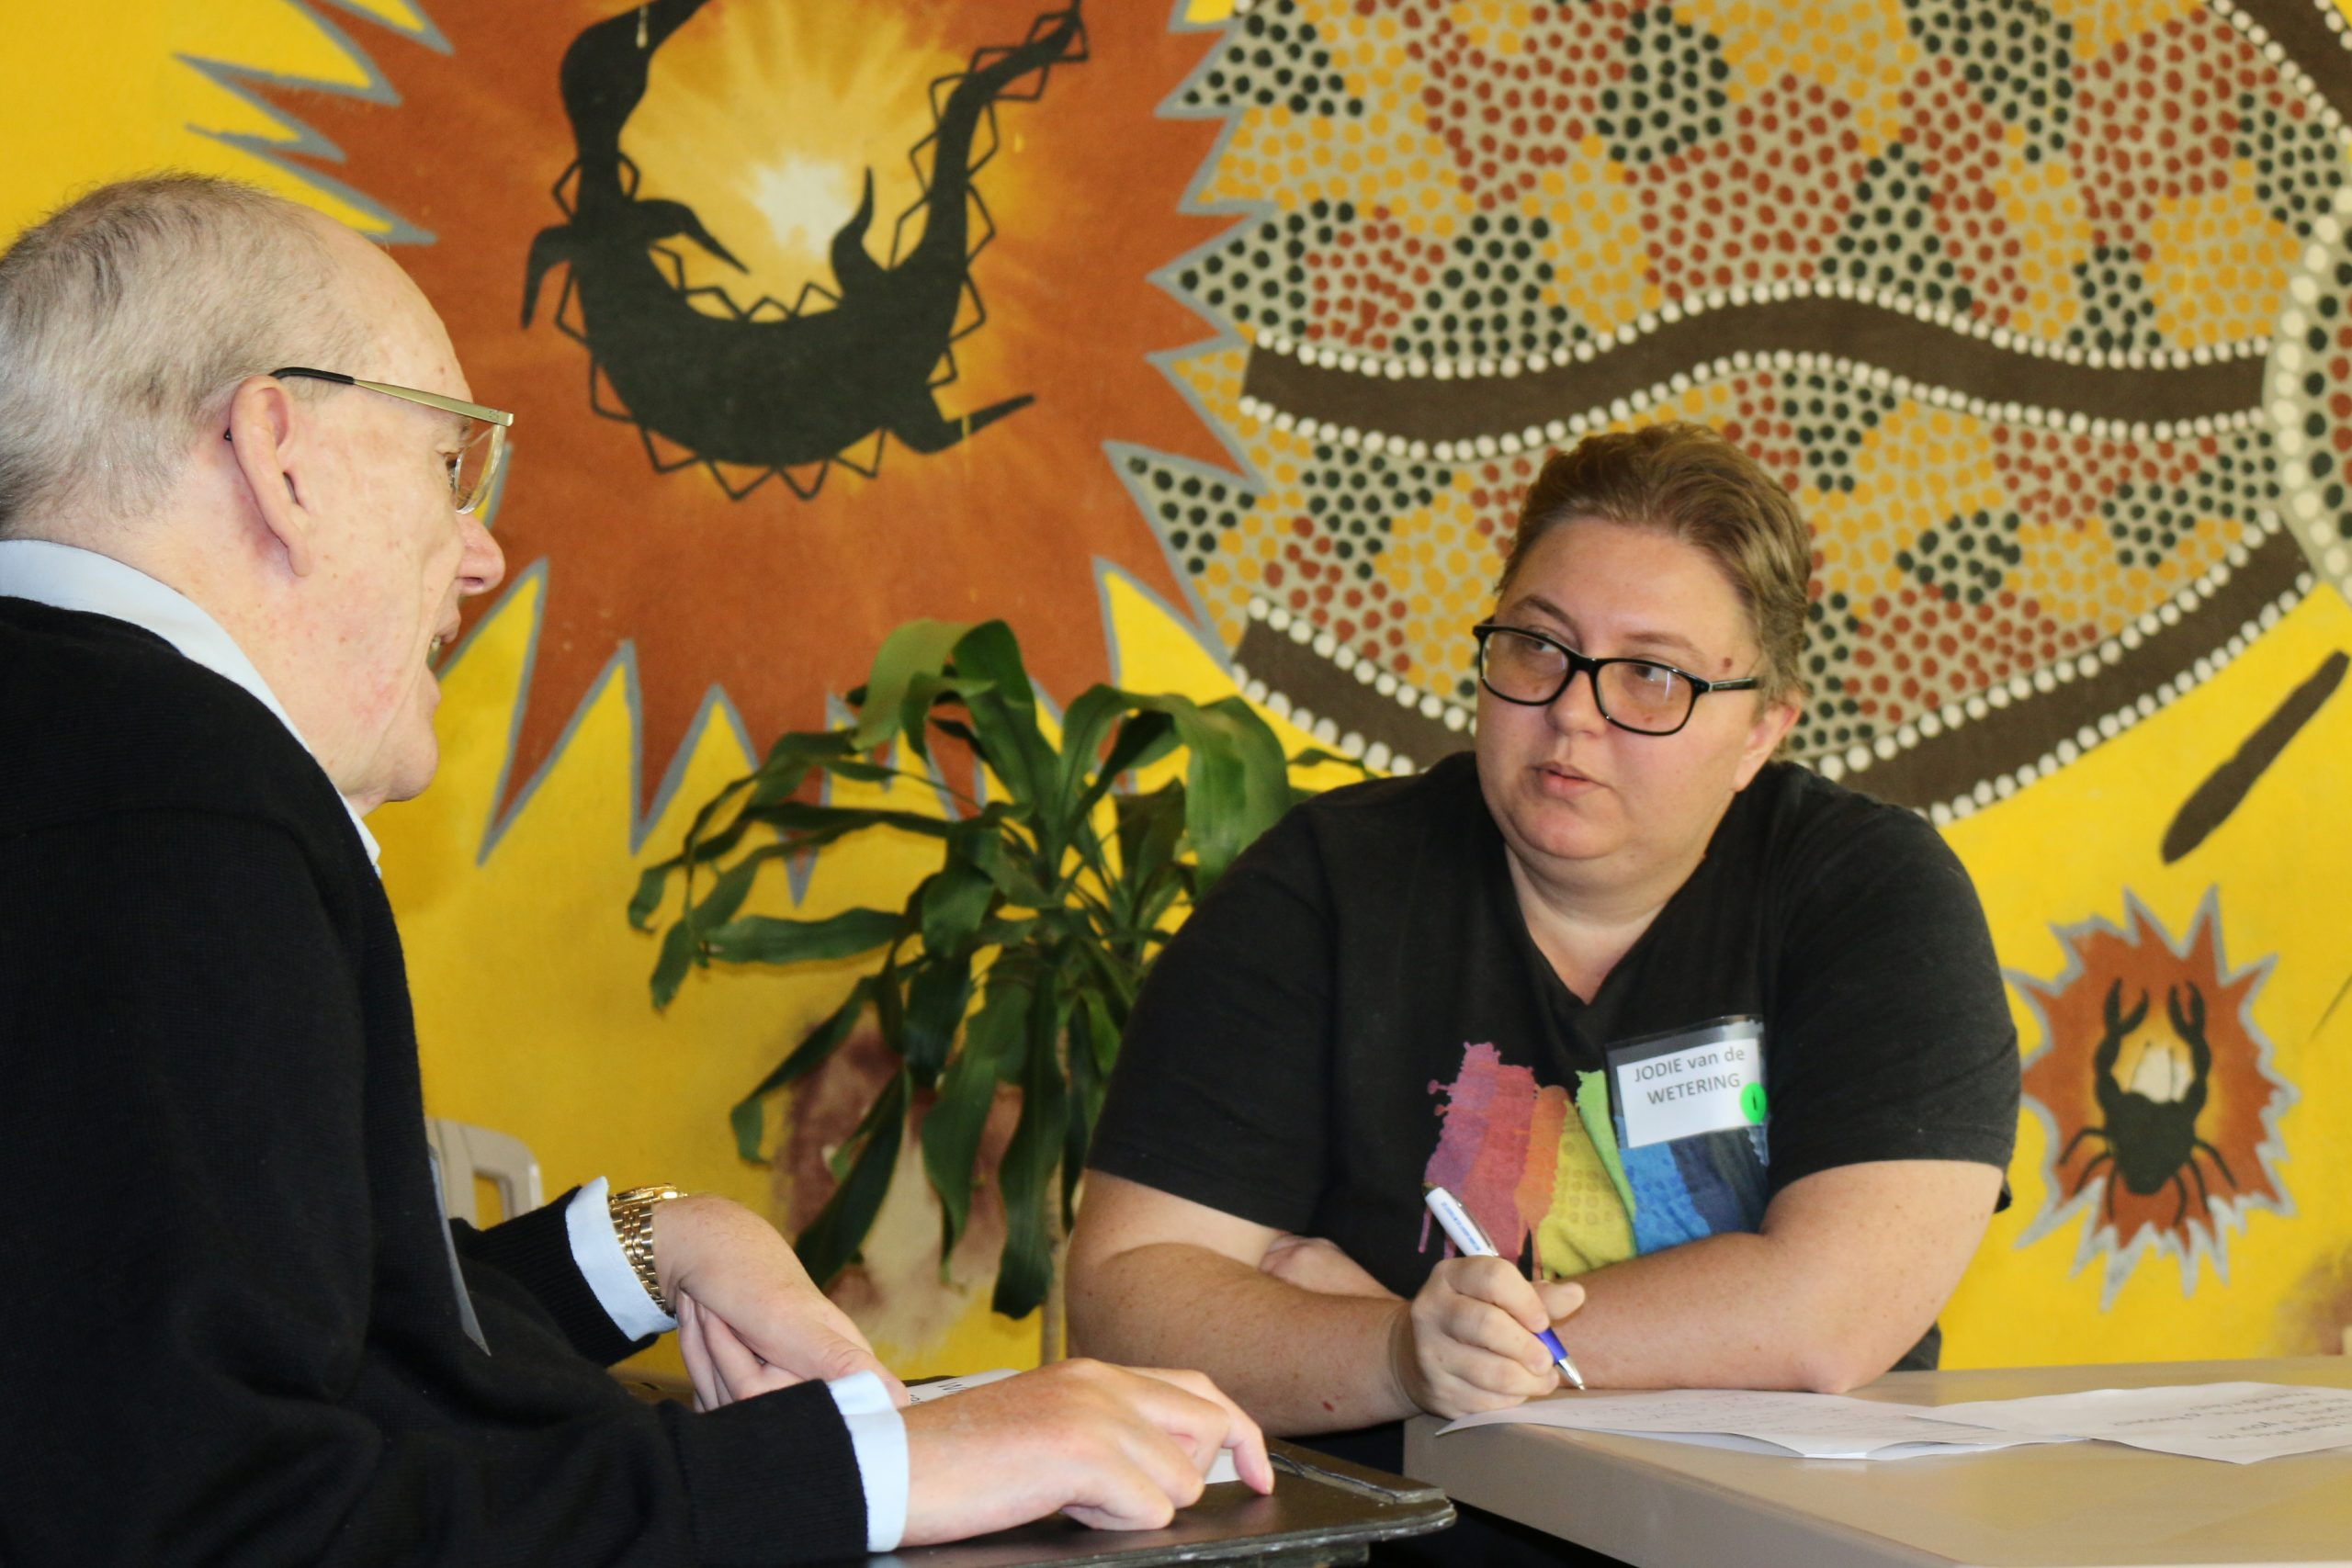 A man and a woman talking at a desk in front of a wall with Indigenous Australian art on it.